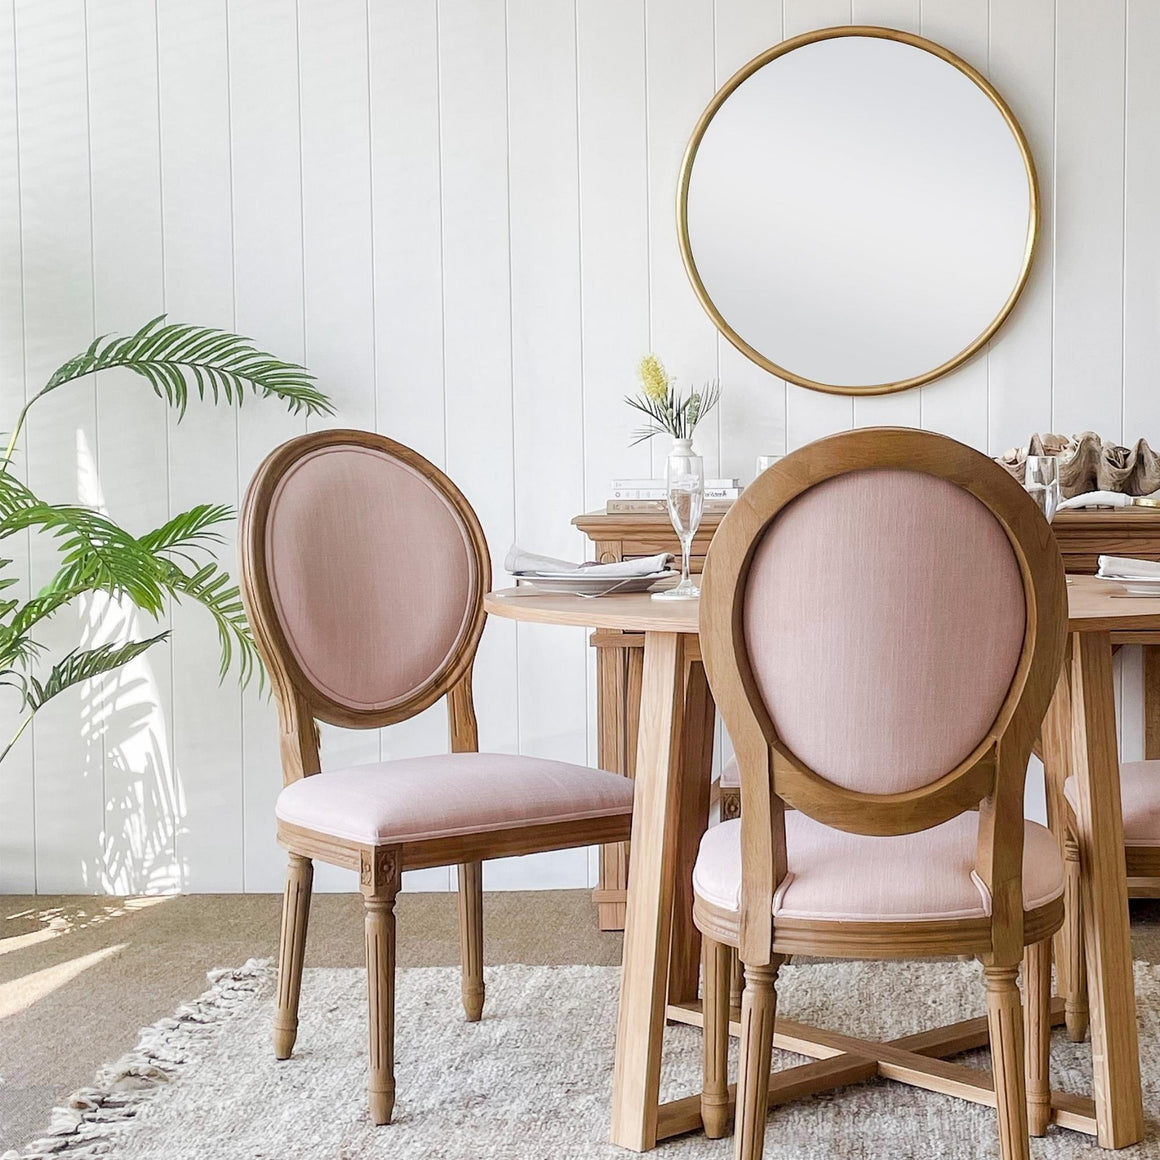 GRIFFIN ROUND GOLD MIRROR